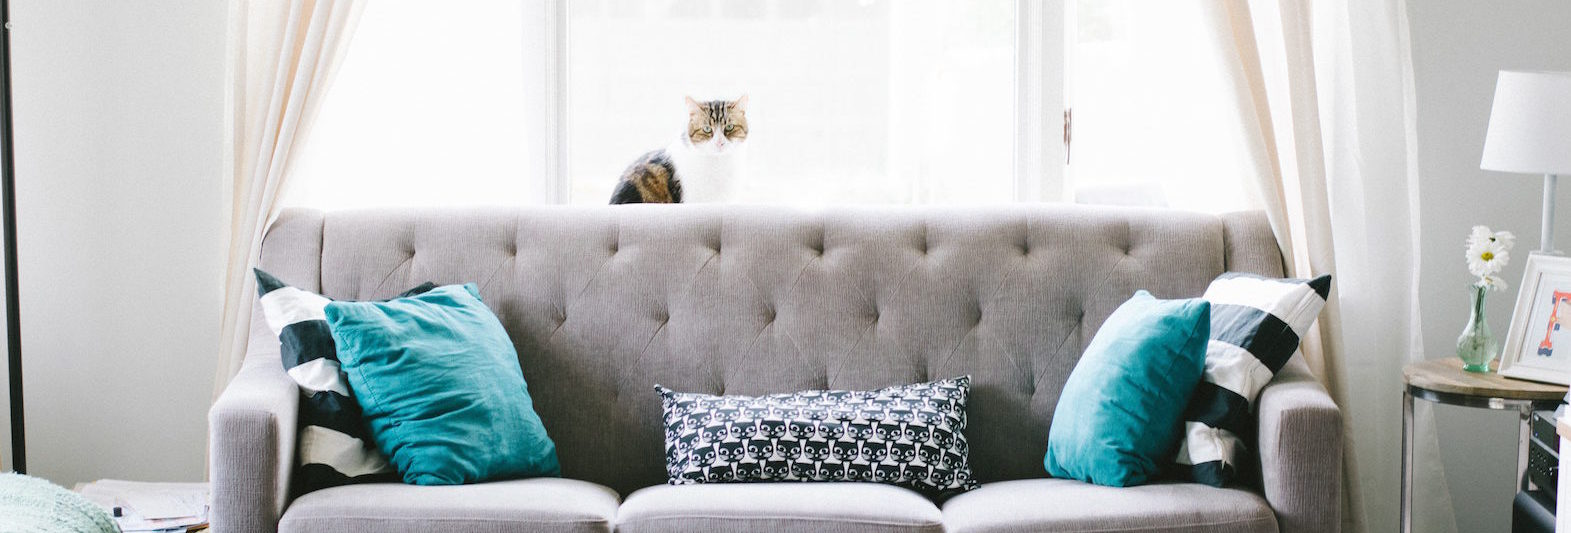 grey couch in front of sunny window with cat perched in it